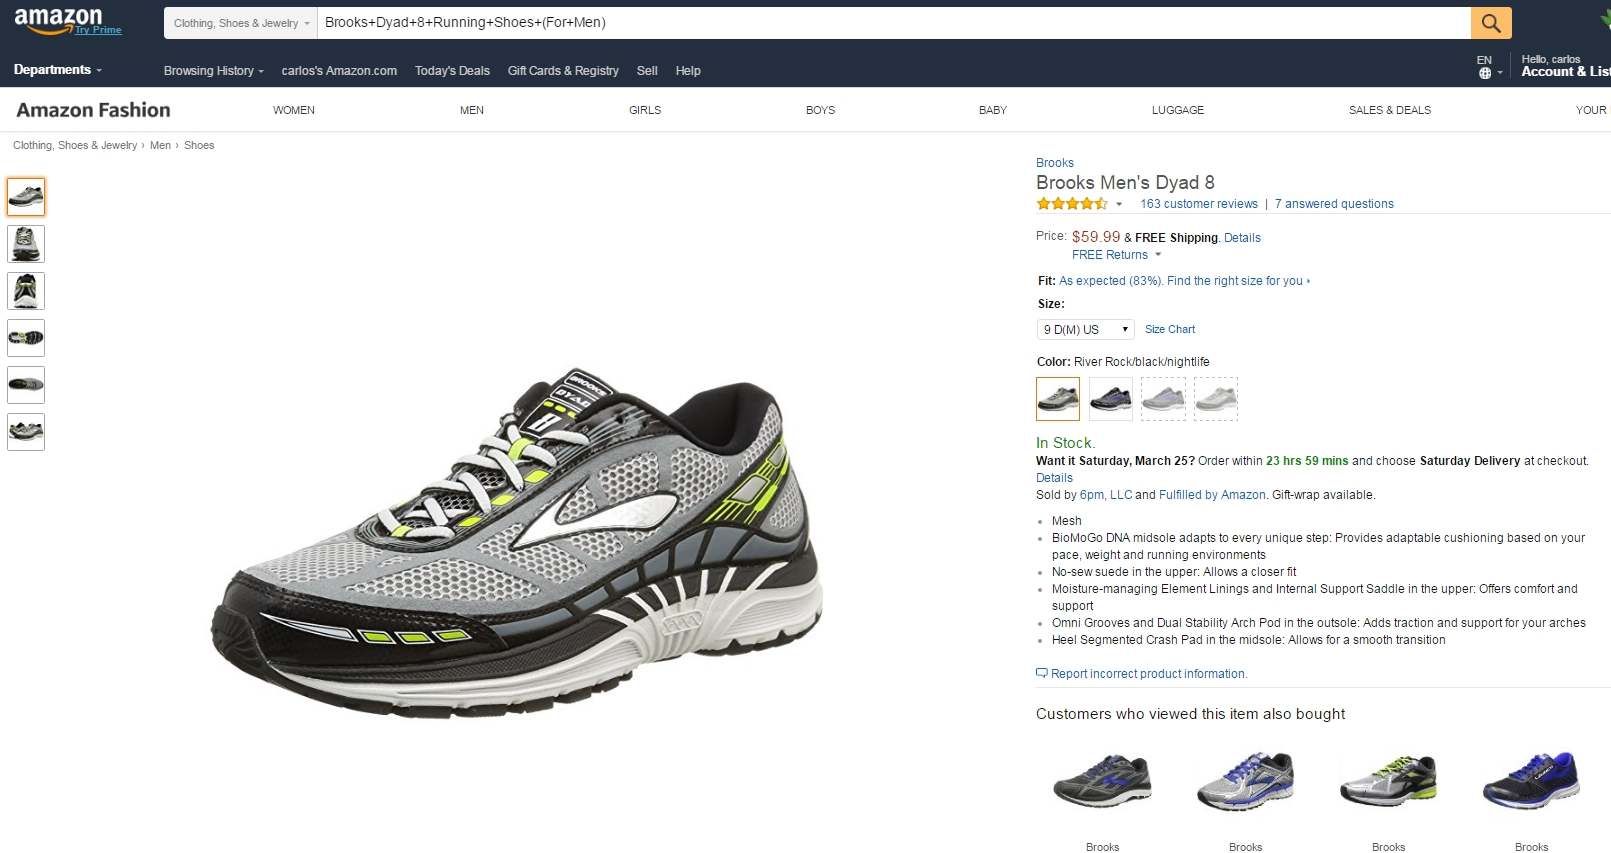 Amazon shoes coupon 2018